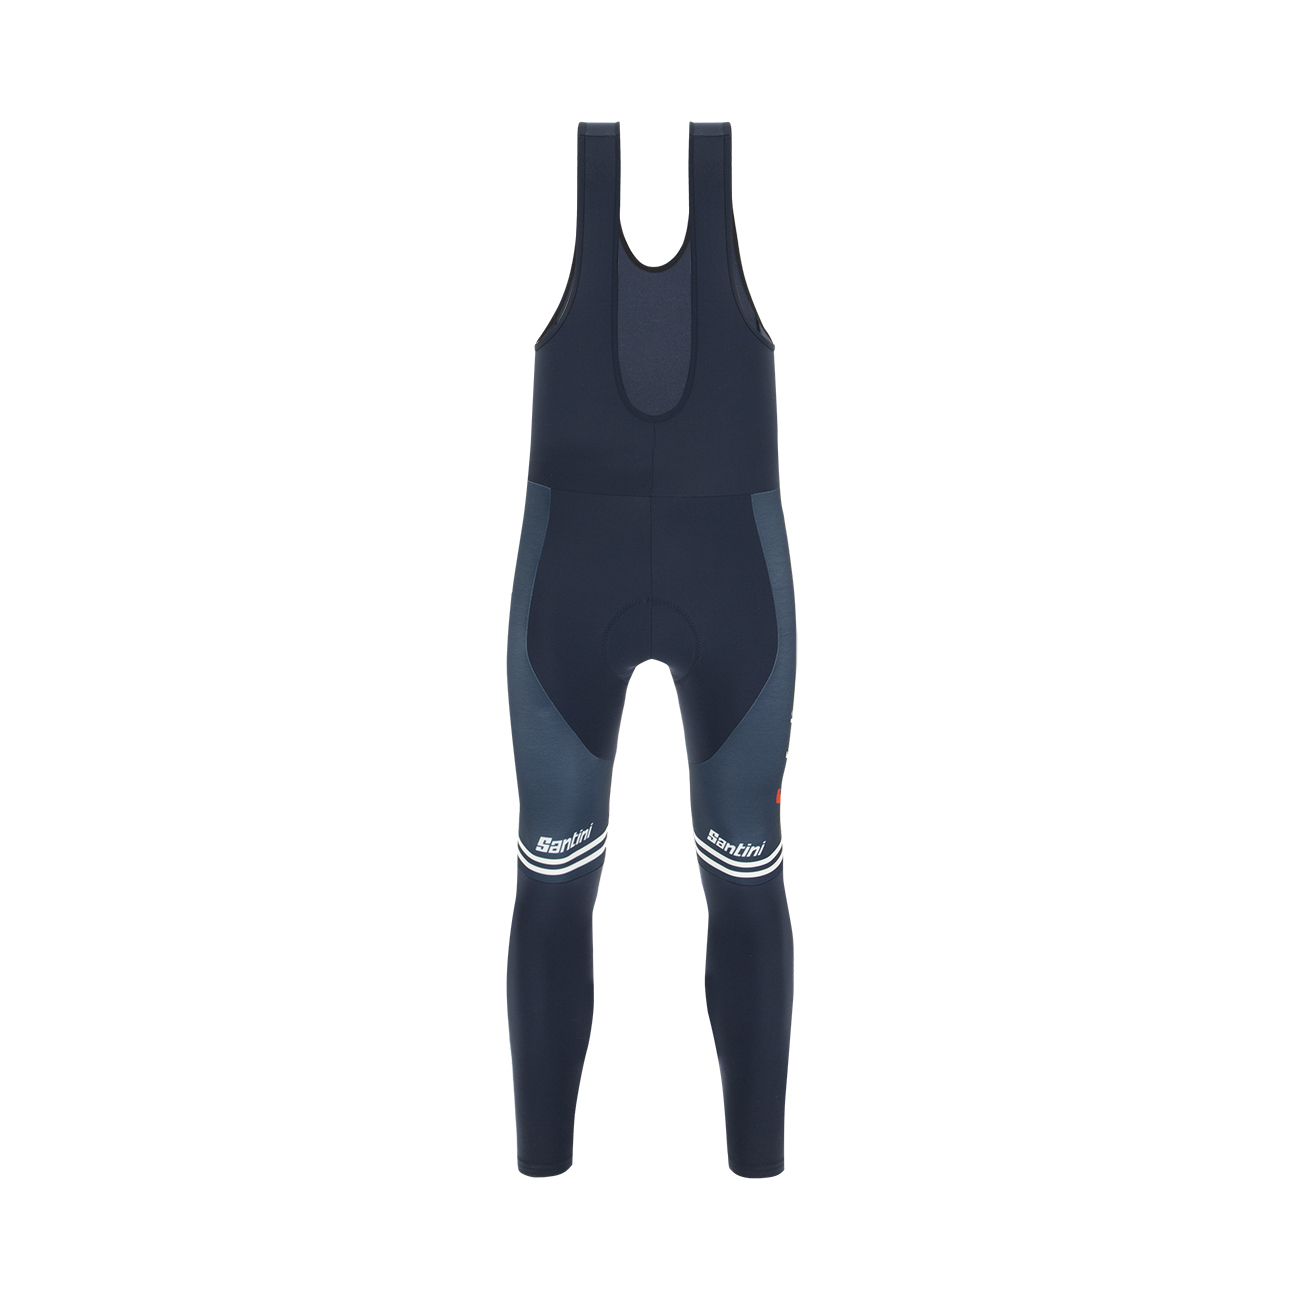 | Santini Fietsbroek Lang met Bretels Winter Heren Blauw - Trek-Segafredo Prime Bib Tights - 2020